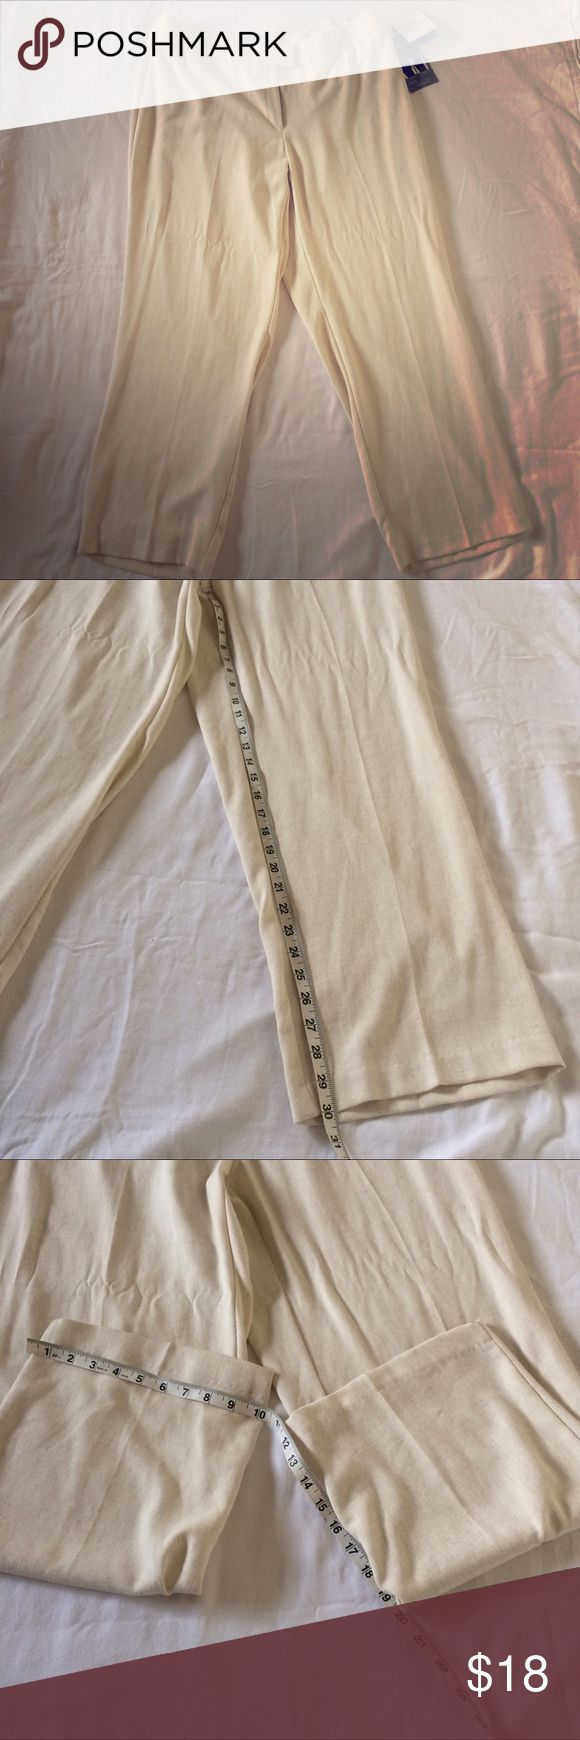 Slimming solution beige stretch dress pants Spring NWT Sag Harbor women's beige stretch dress pants. With slimming solution. Spring collection. MSRP $40. Linen type field to the pant material. 45% polyester 35% rayon 15% linen 5% spandex. Sag Harbor Pants Trousers